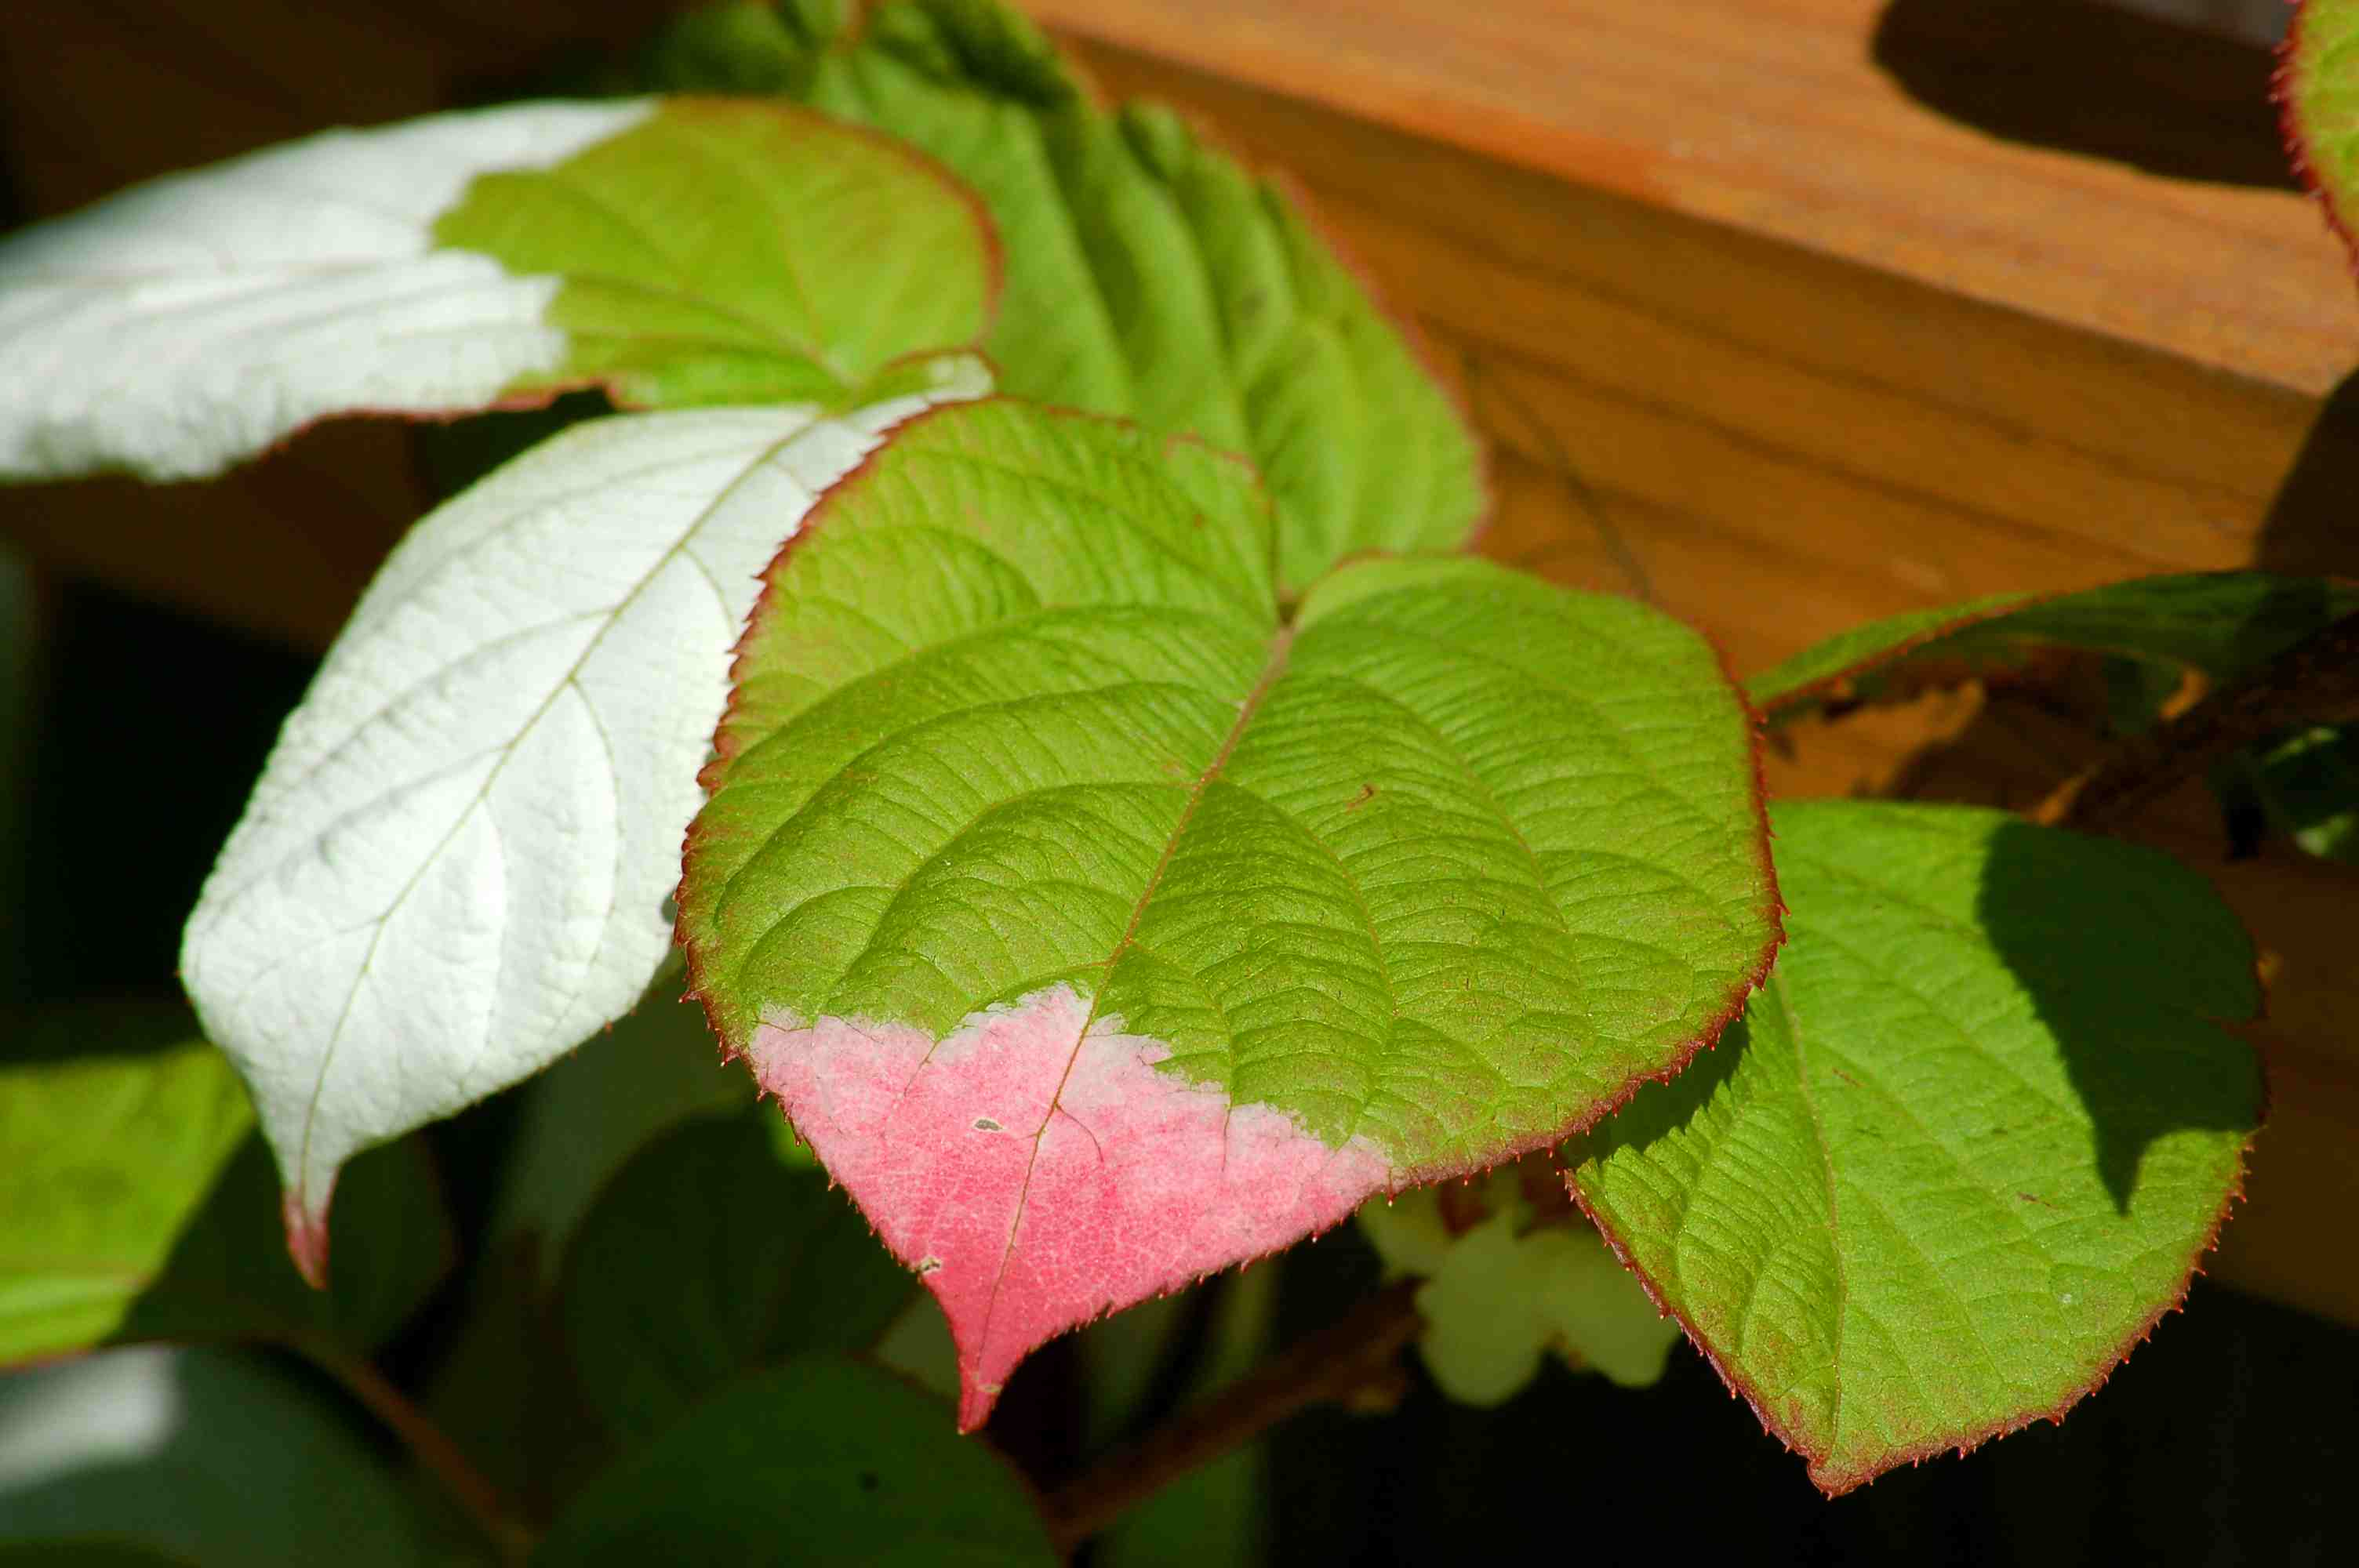 Male arctic kiwi vine leaves with three colors.